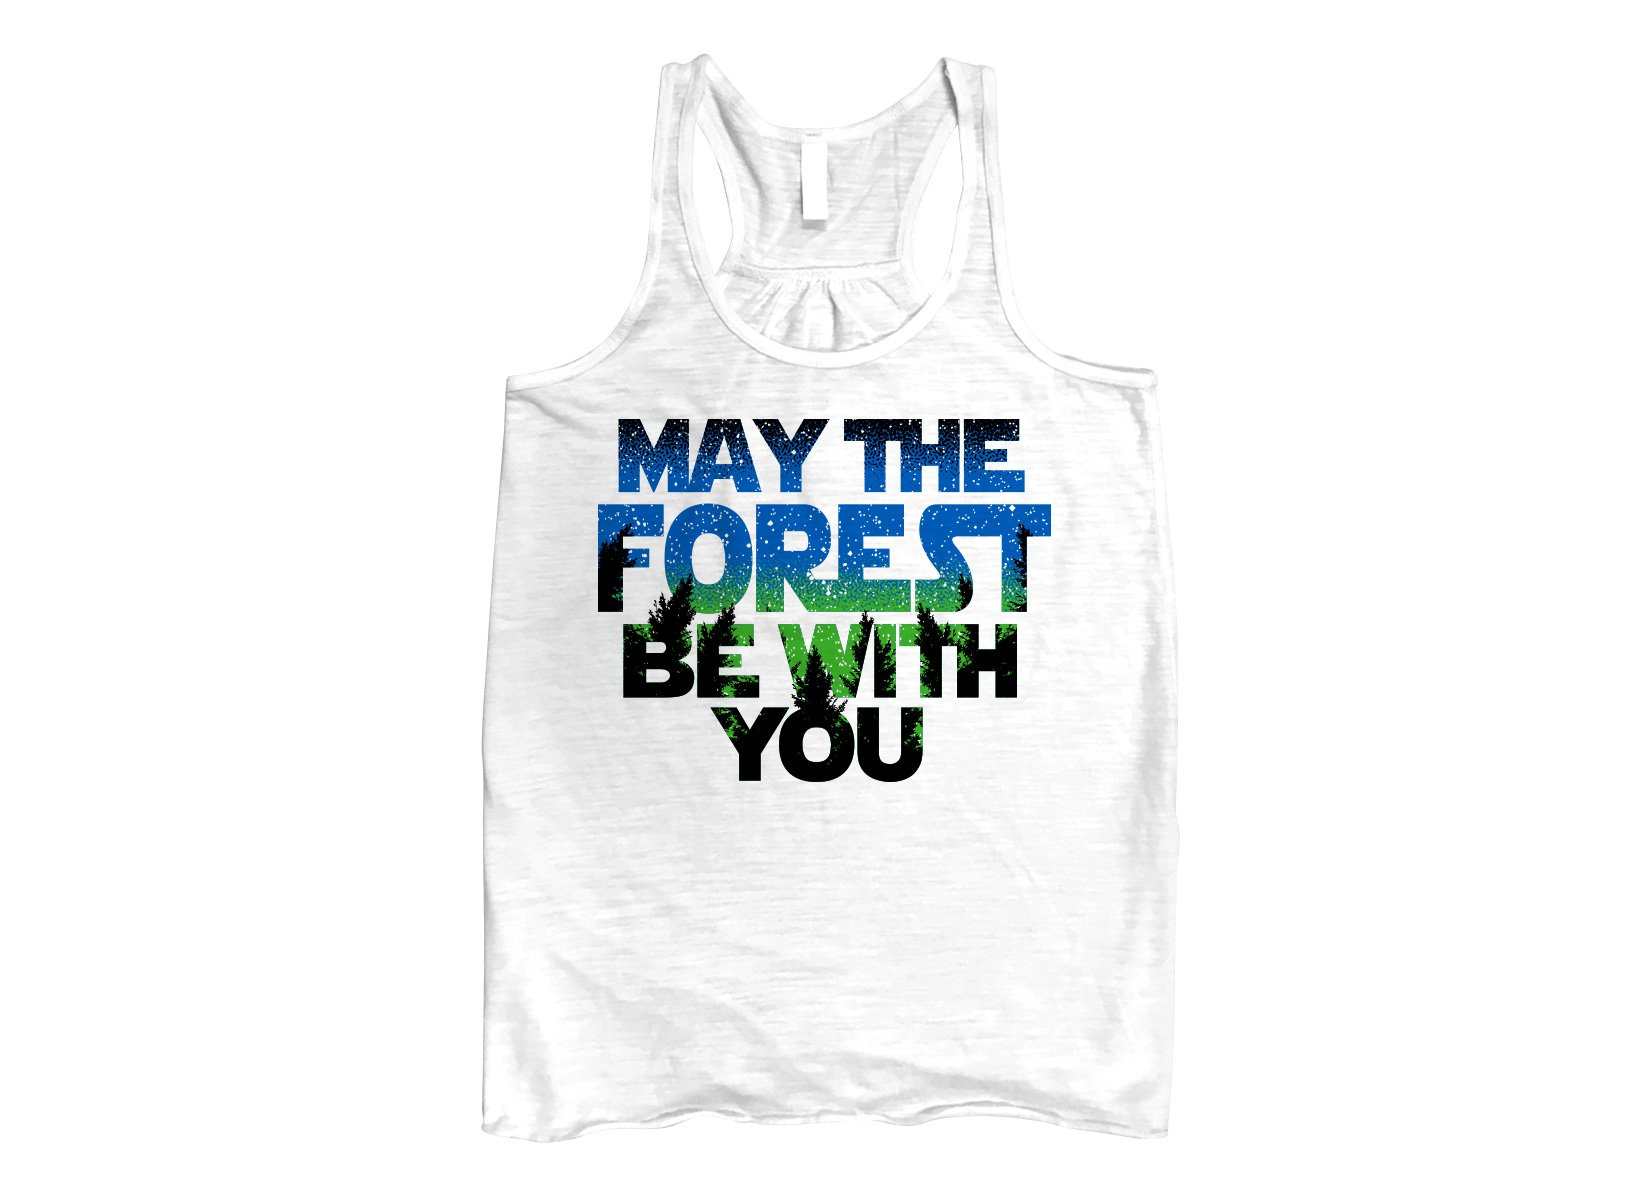 May The Forest Be With You on Womens Tanks T-Shirt